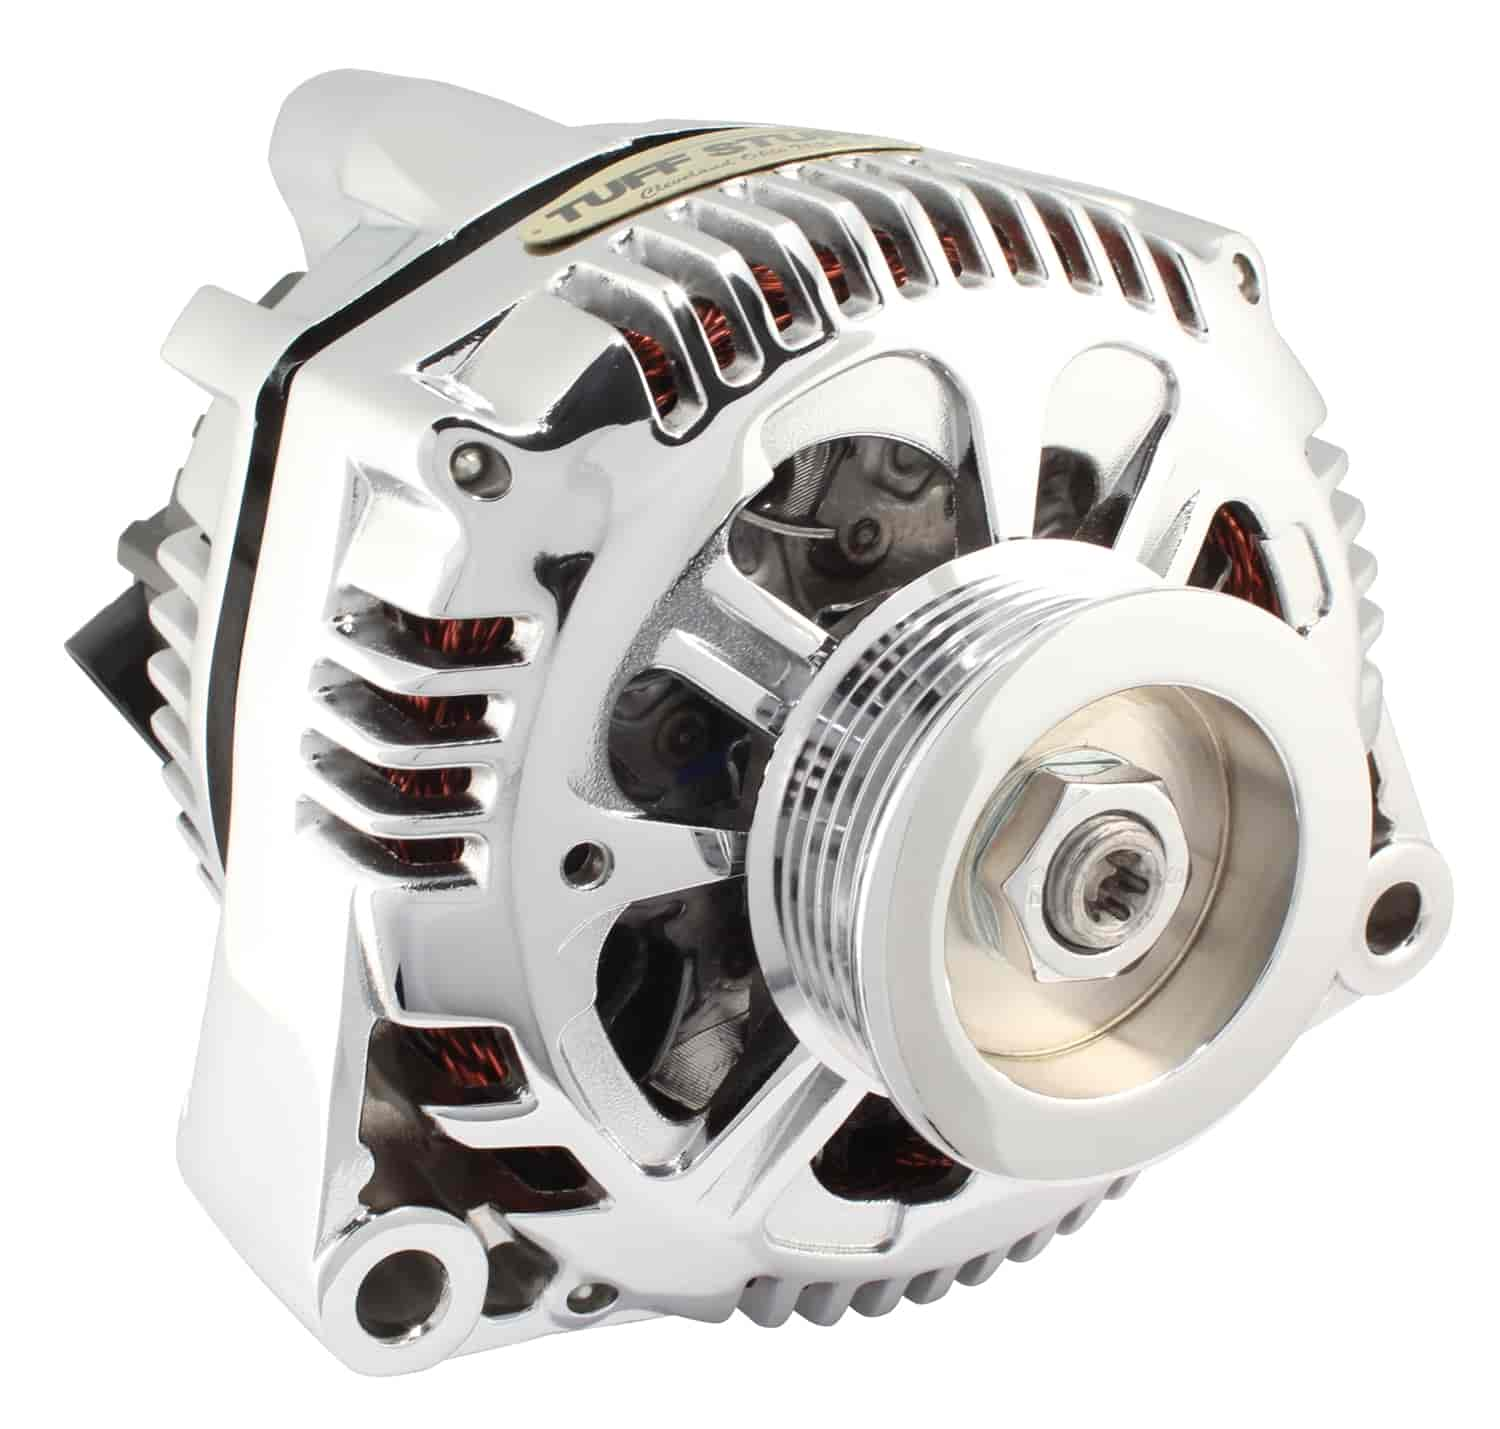 Tuff Stuff 7721NA - Tuff Stuff Chrome Alternators